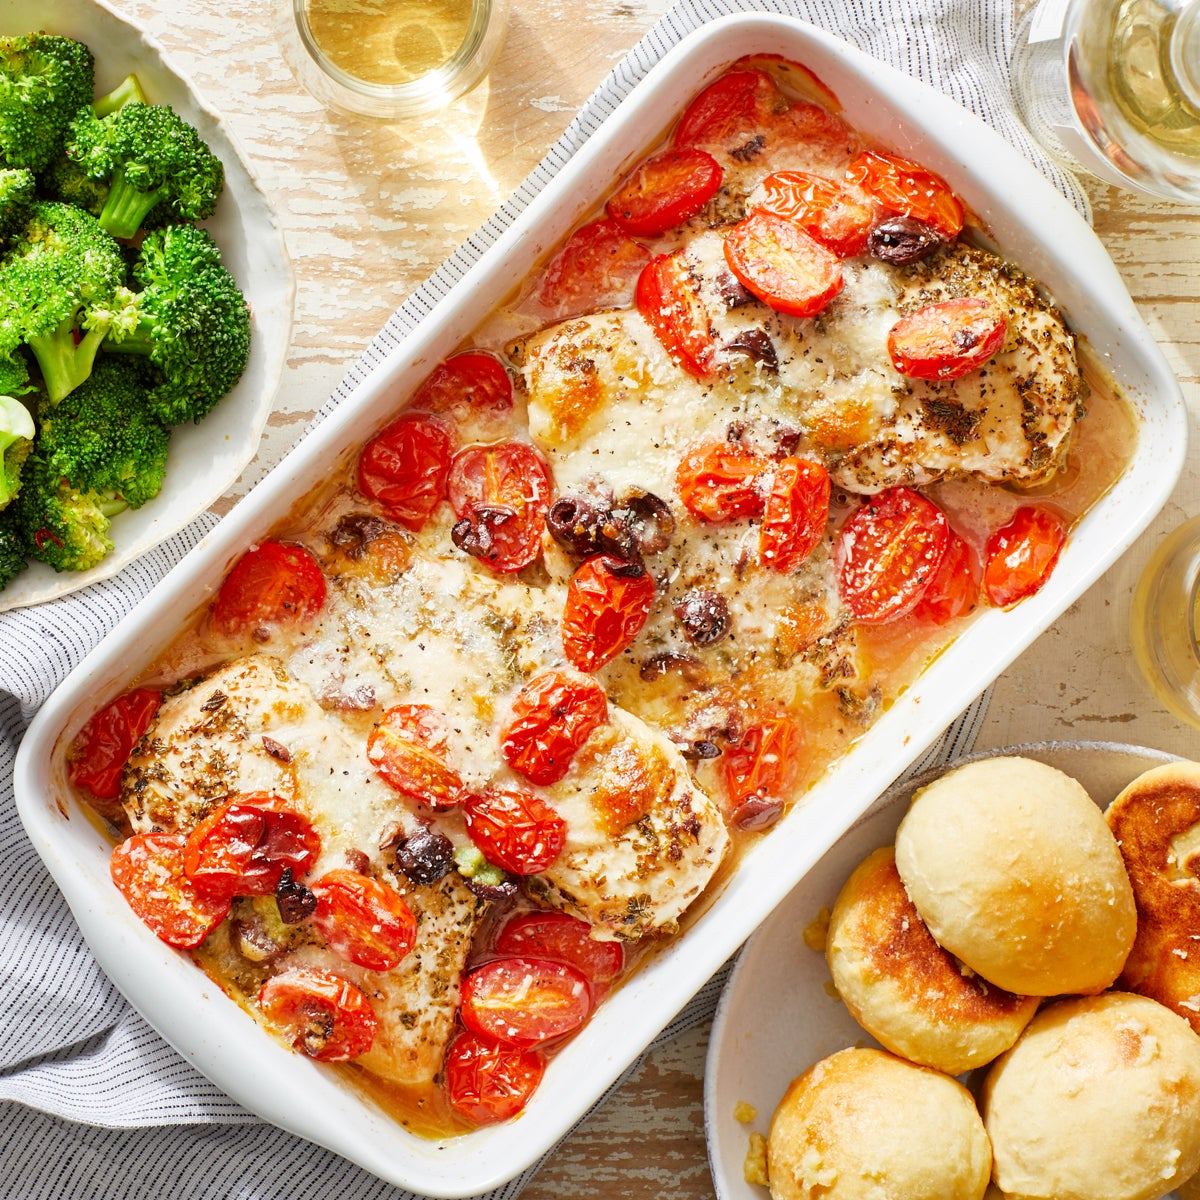 Mozzarella & Tomato Baked Chicken with Garlic-Parmesan Rolls